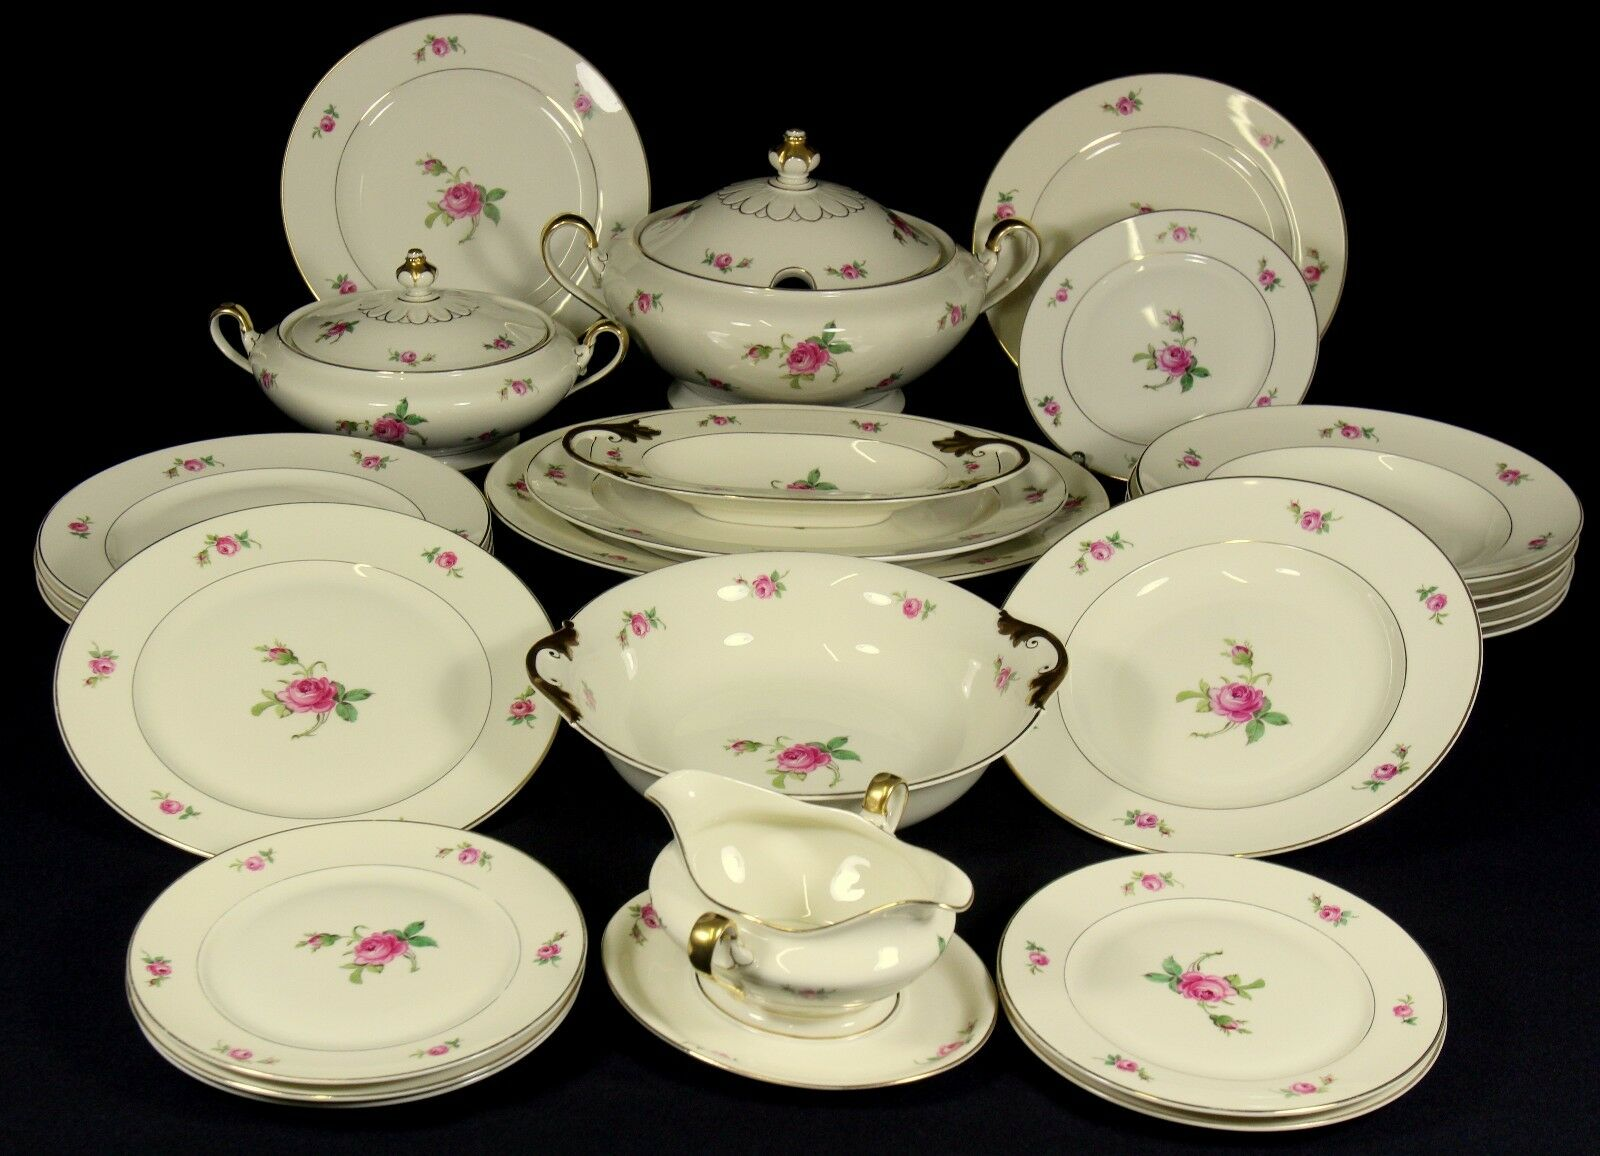 pinkNTHAL - Service SPEISESERVICE f. 6 Pers. TAFELSERVICE - IVORY pink - um 1930